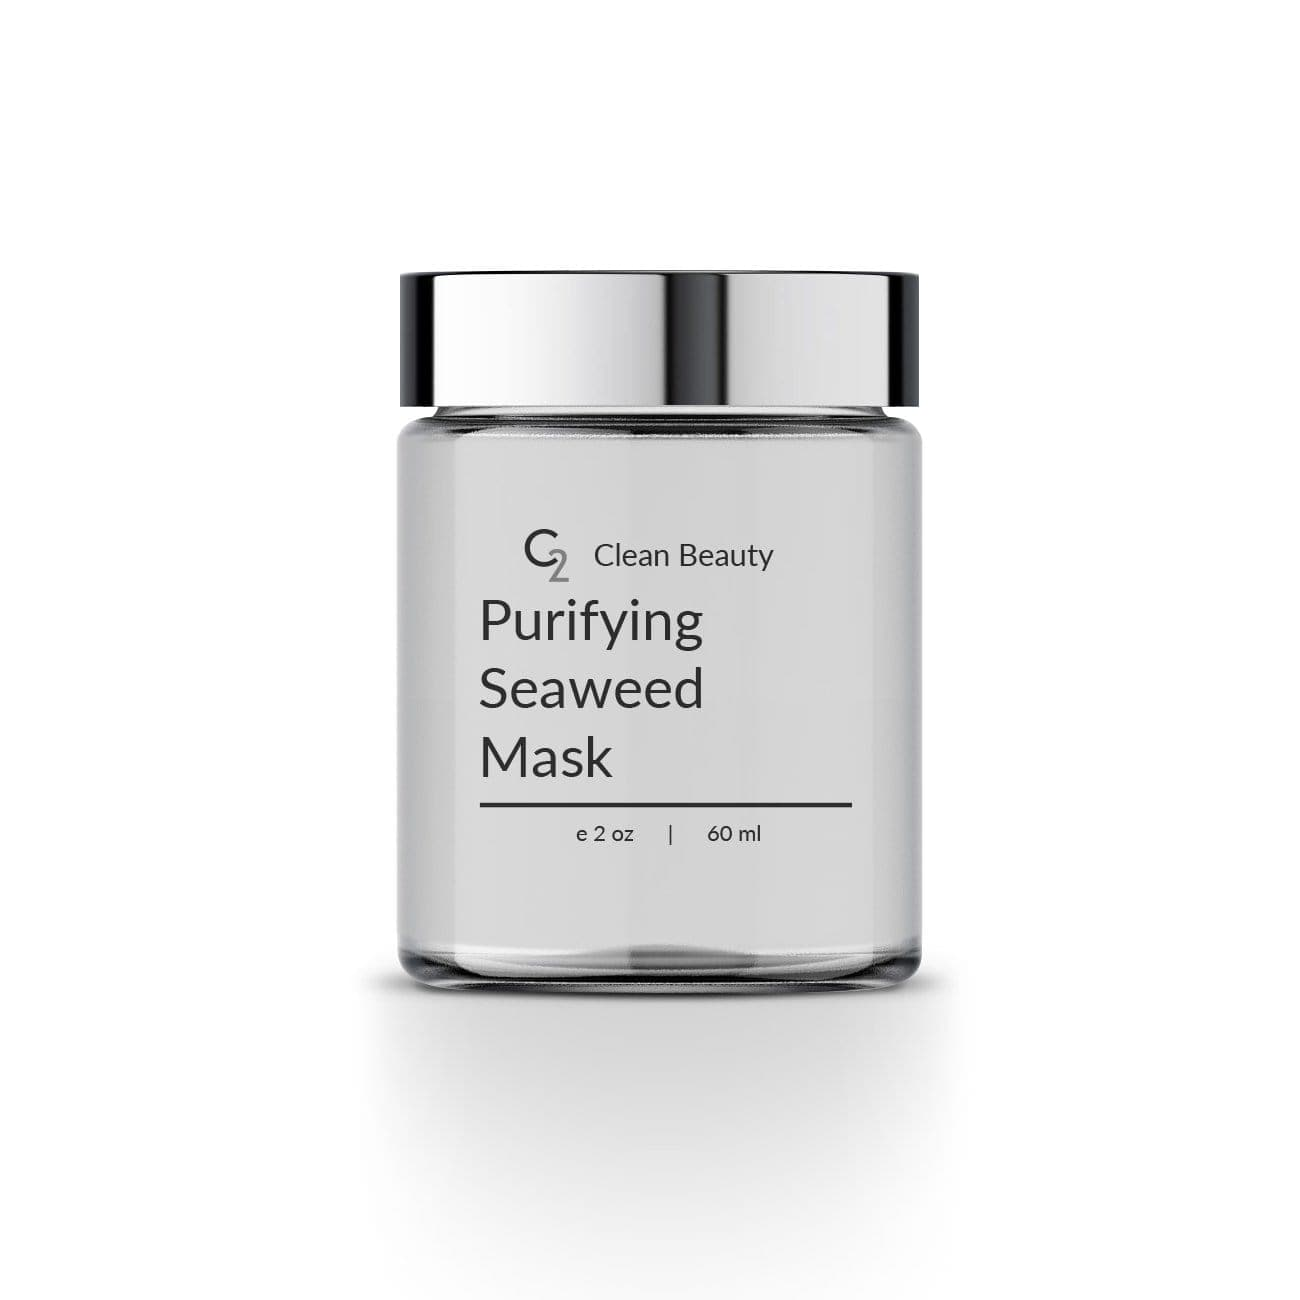 Purifying Seaweed Mask